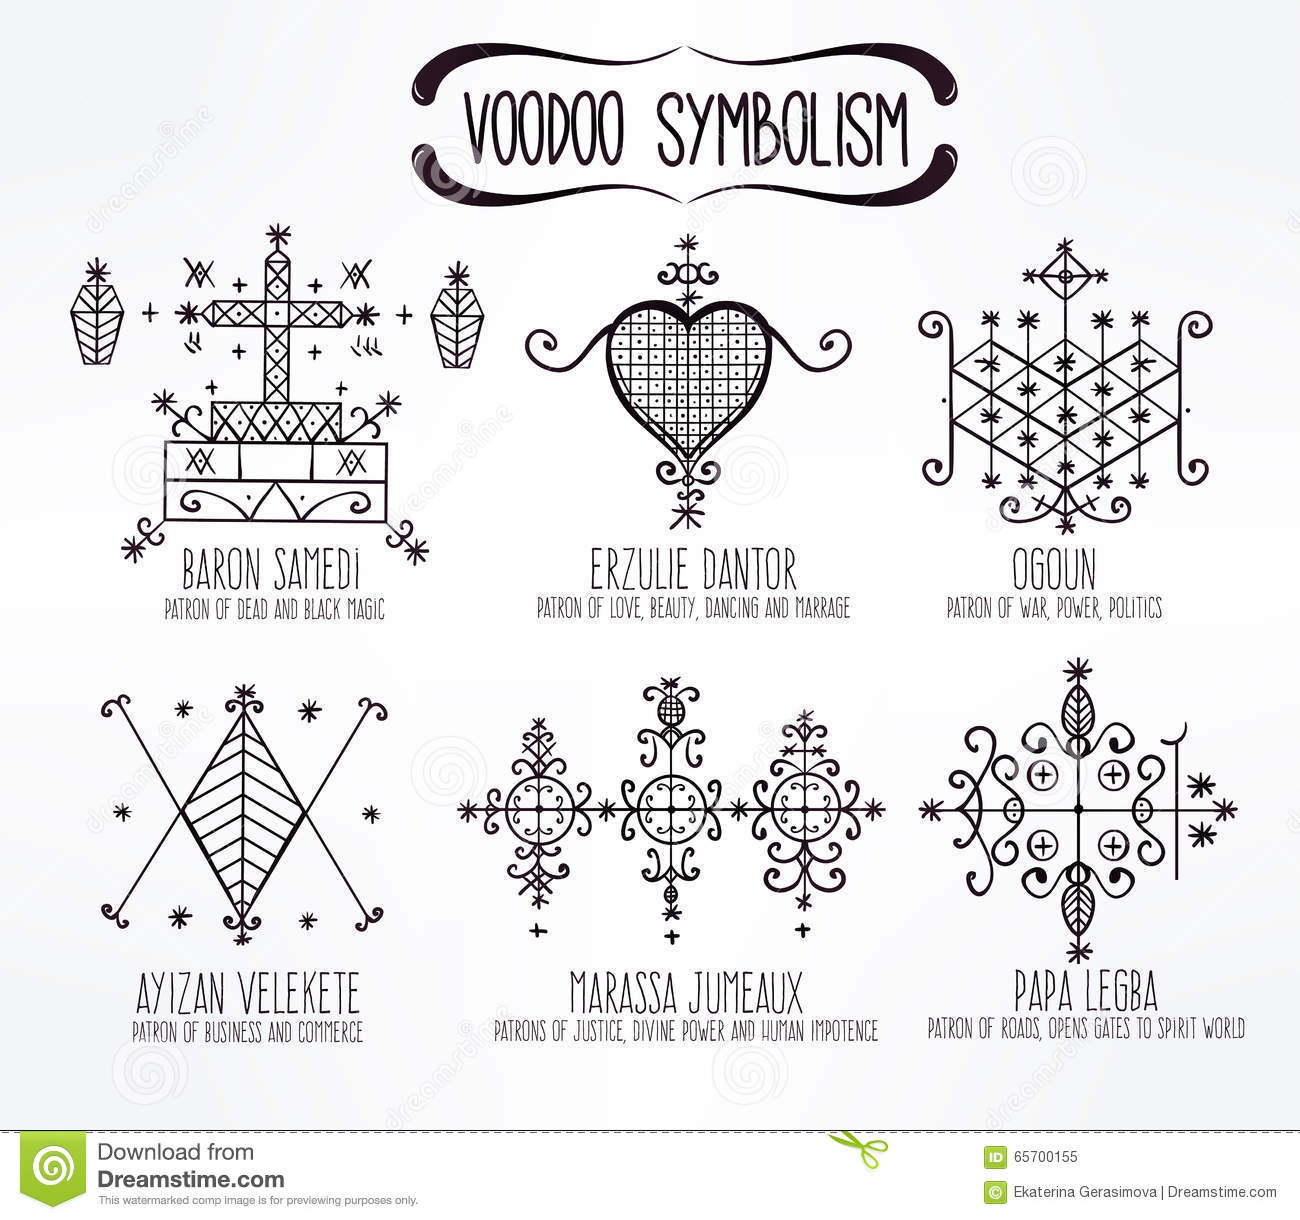 Symbols and their meanings voodoo symbols and their meanings buycottarizona